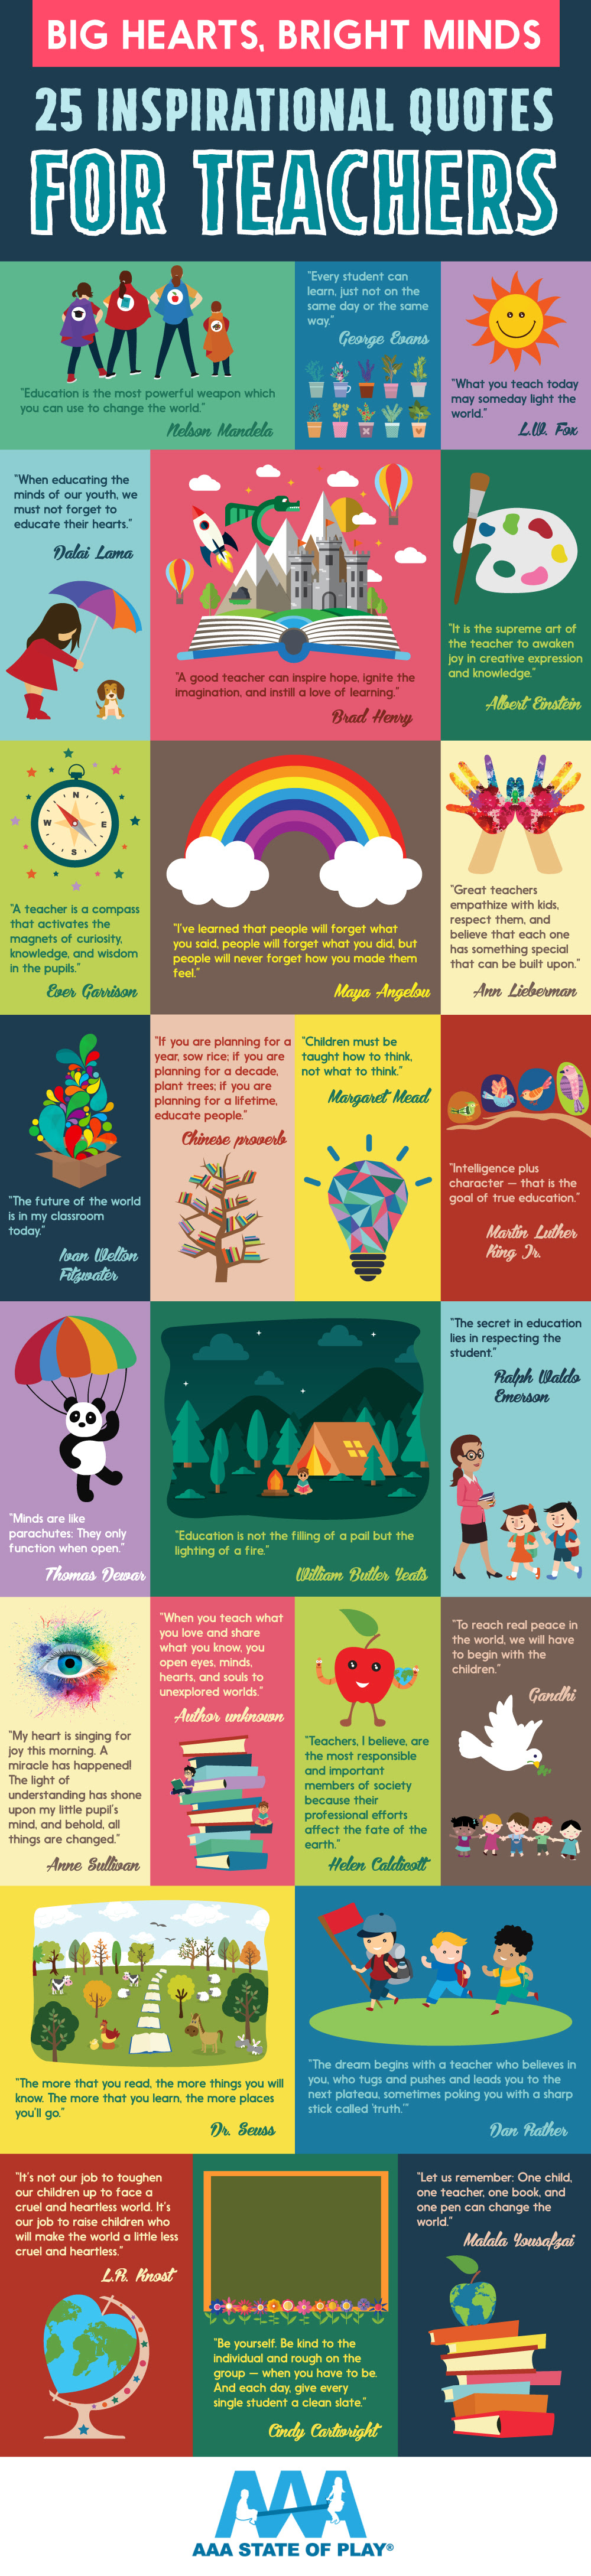 25 Inspirational Quotes for Teachers (Infographic)